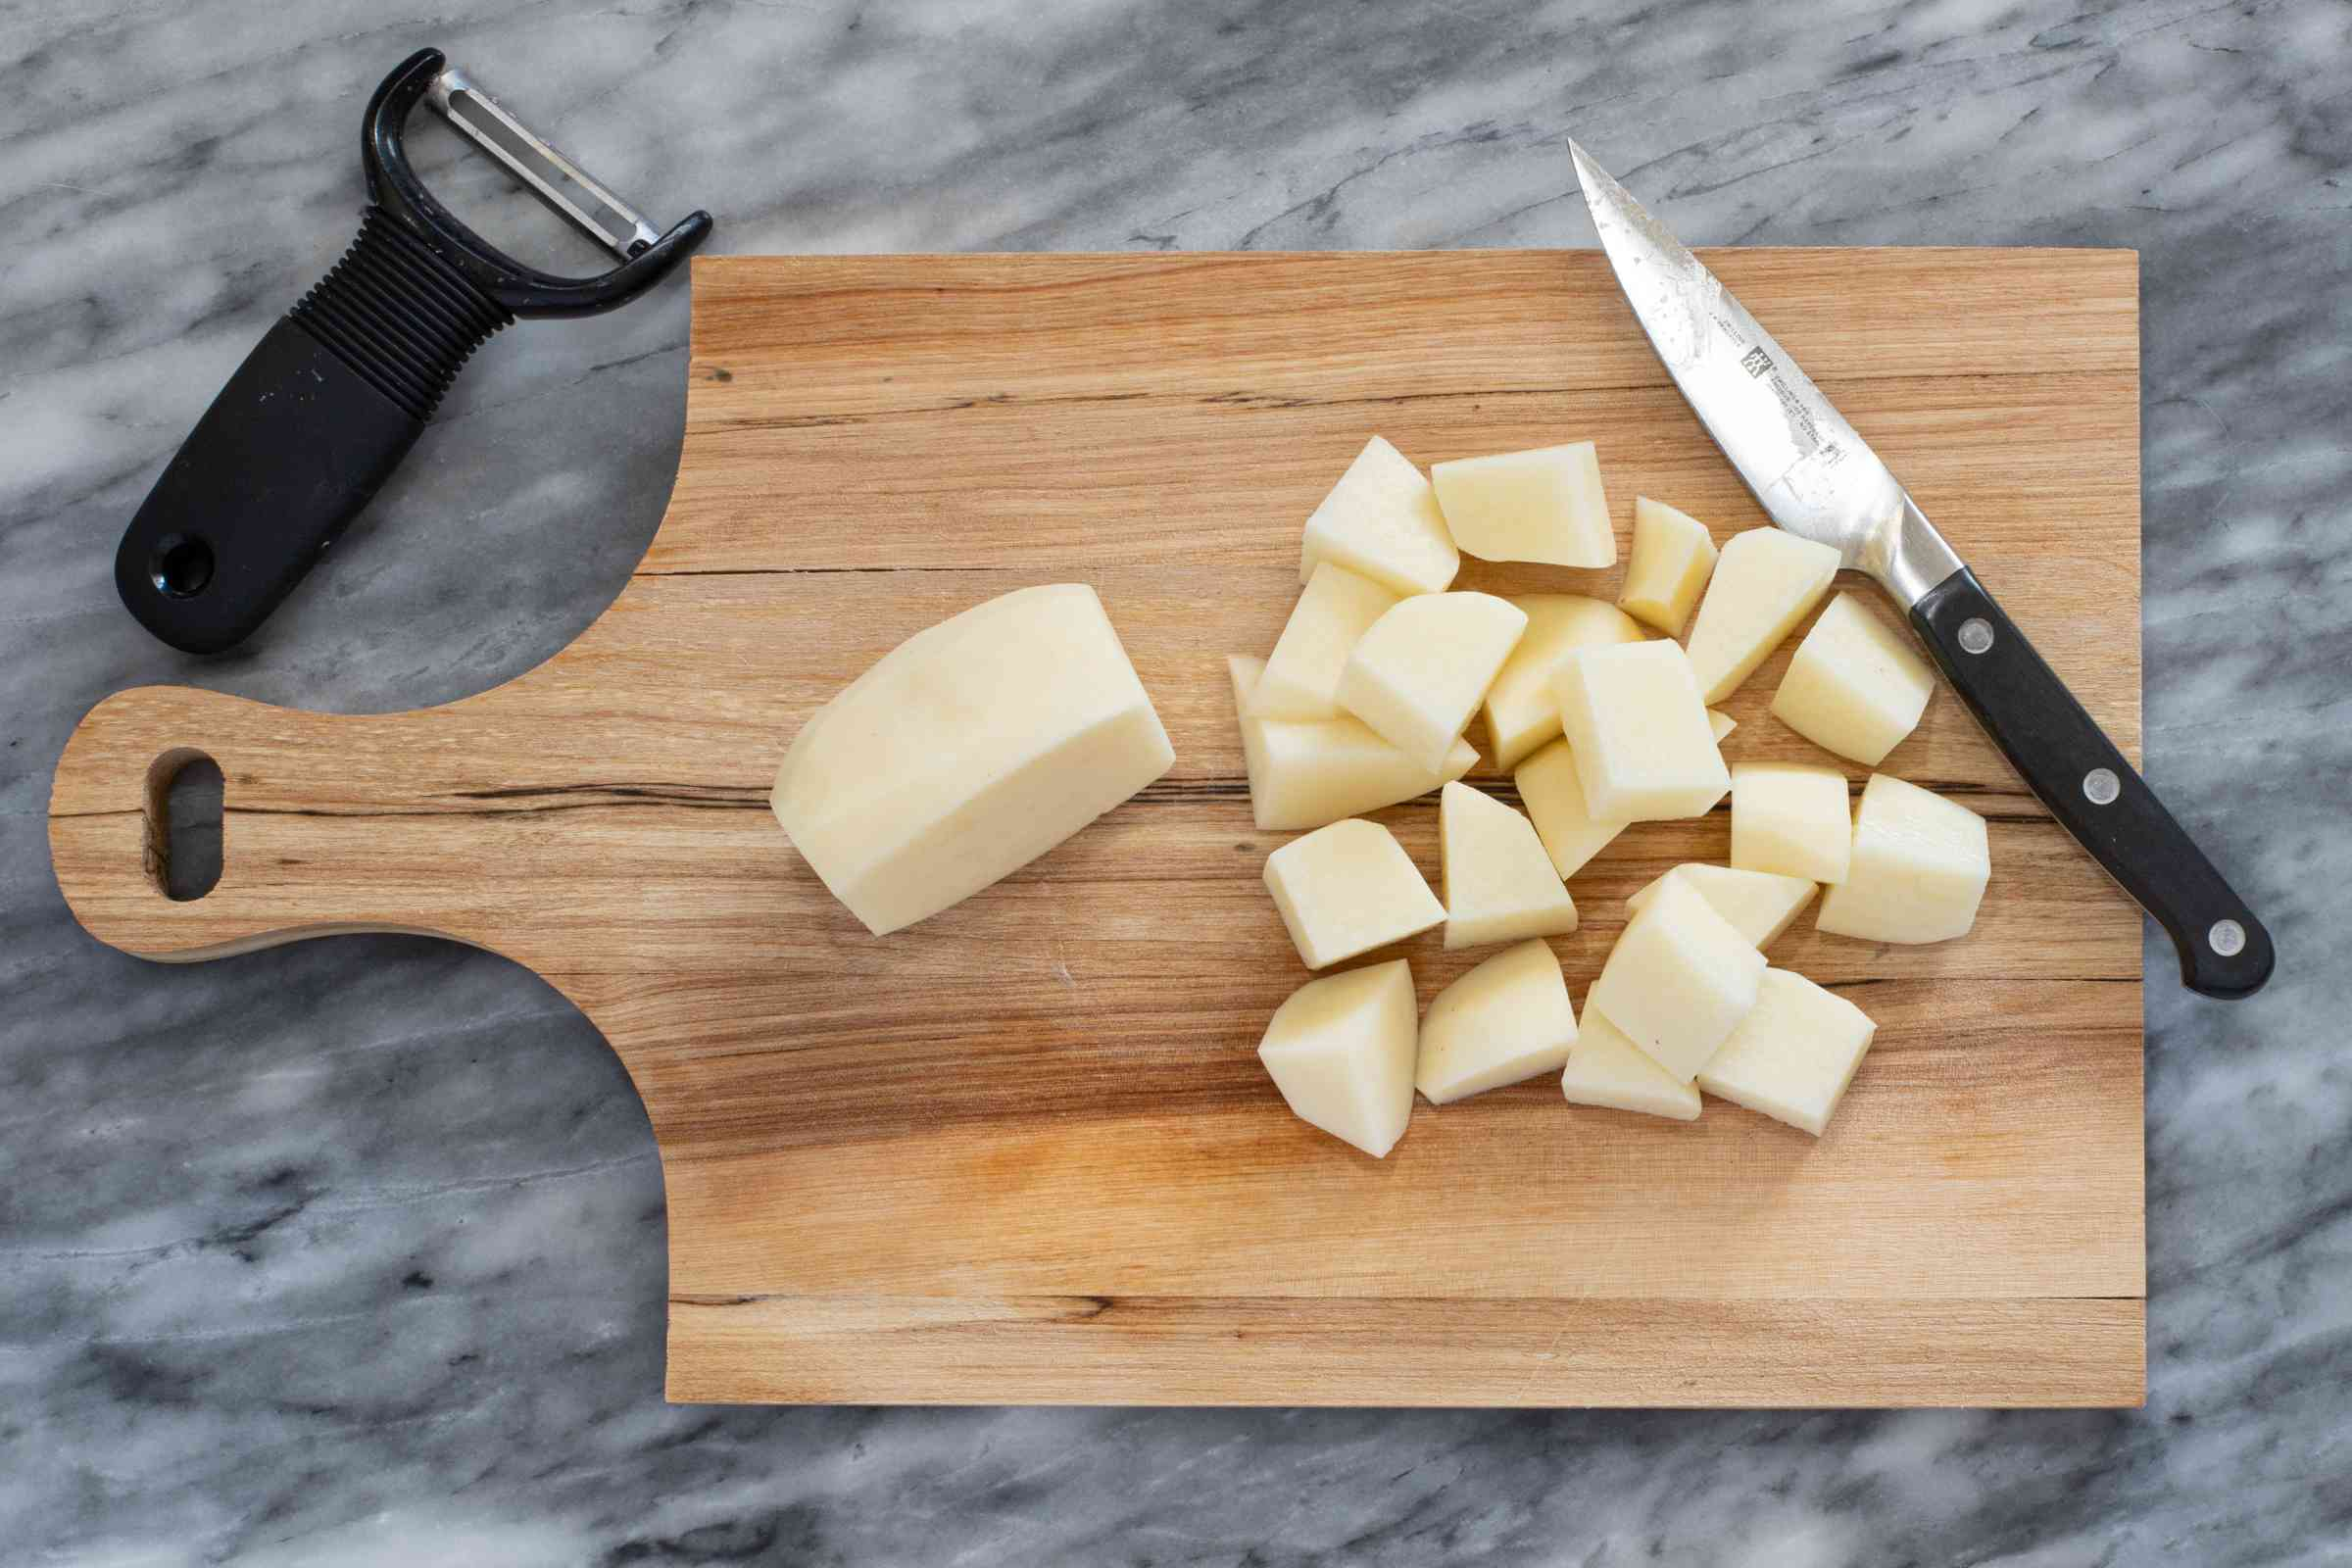 Cutting potatoes into cubes.